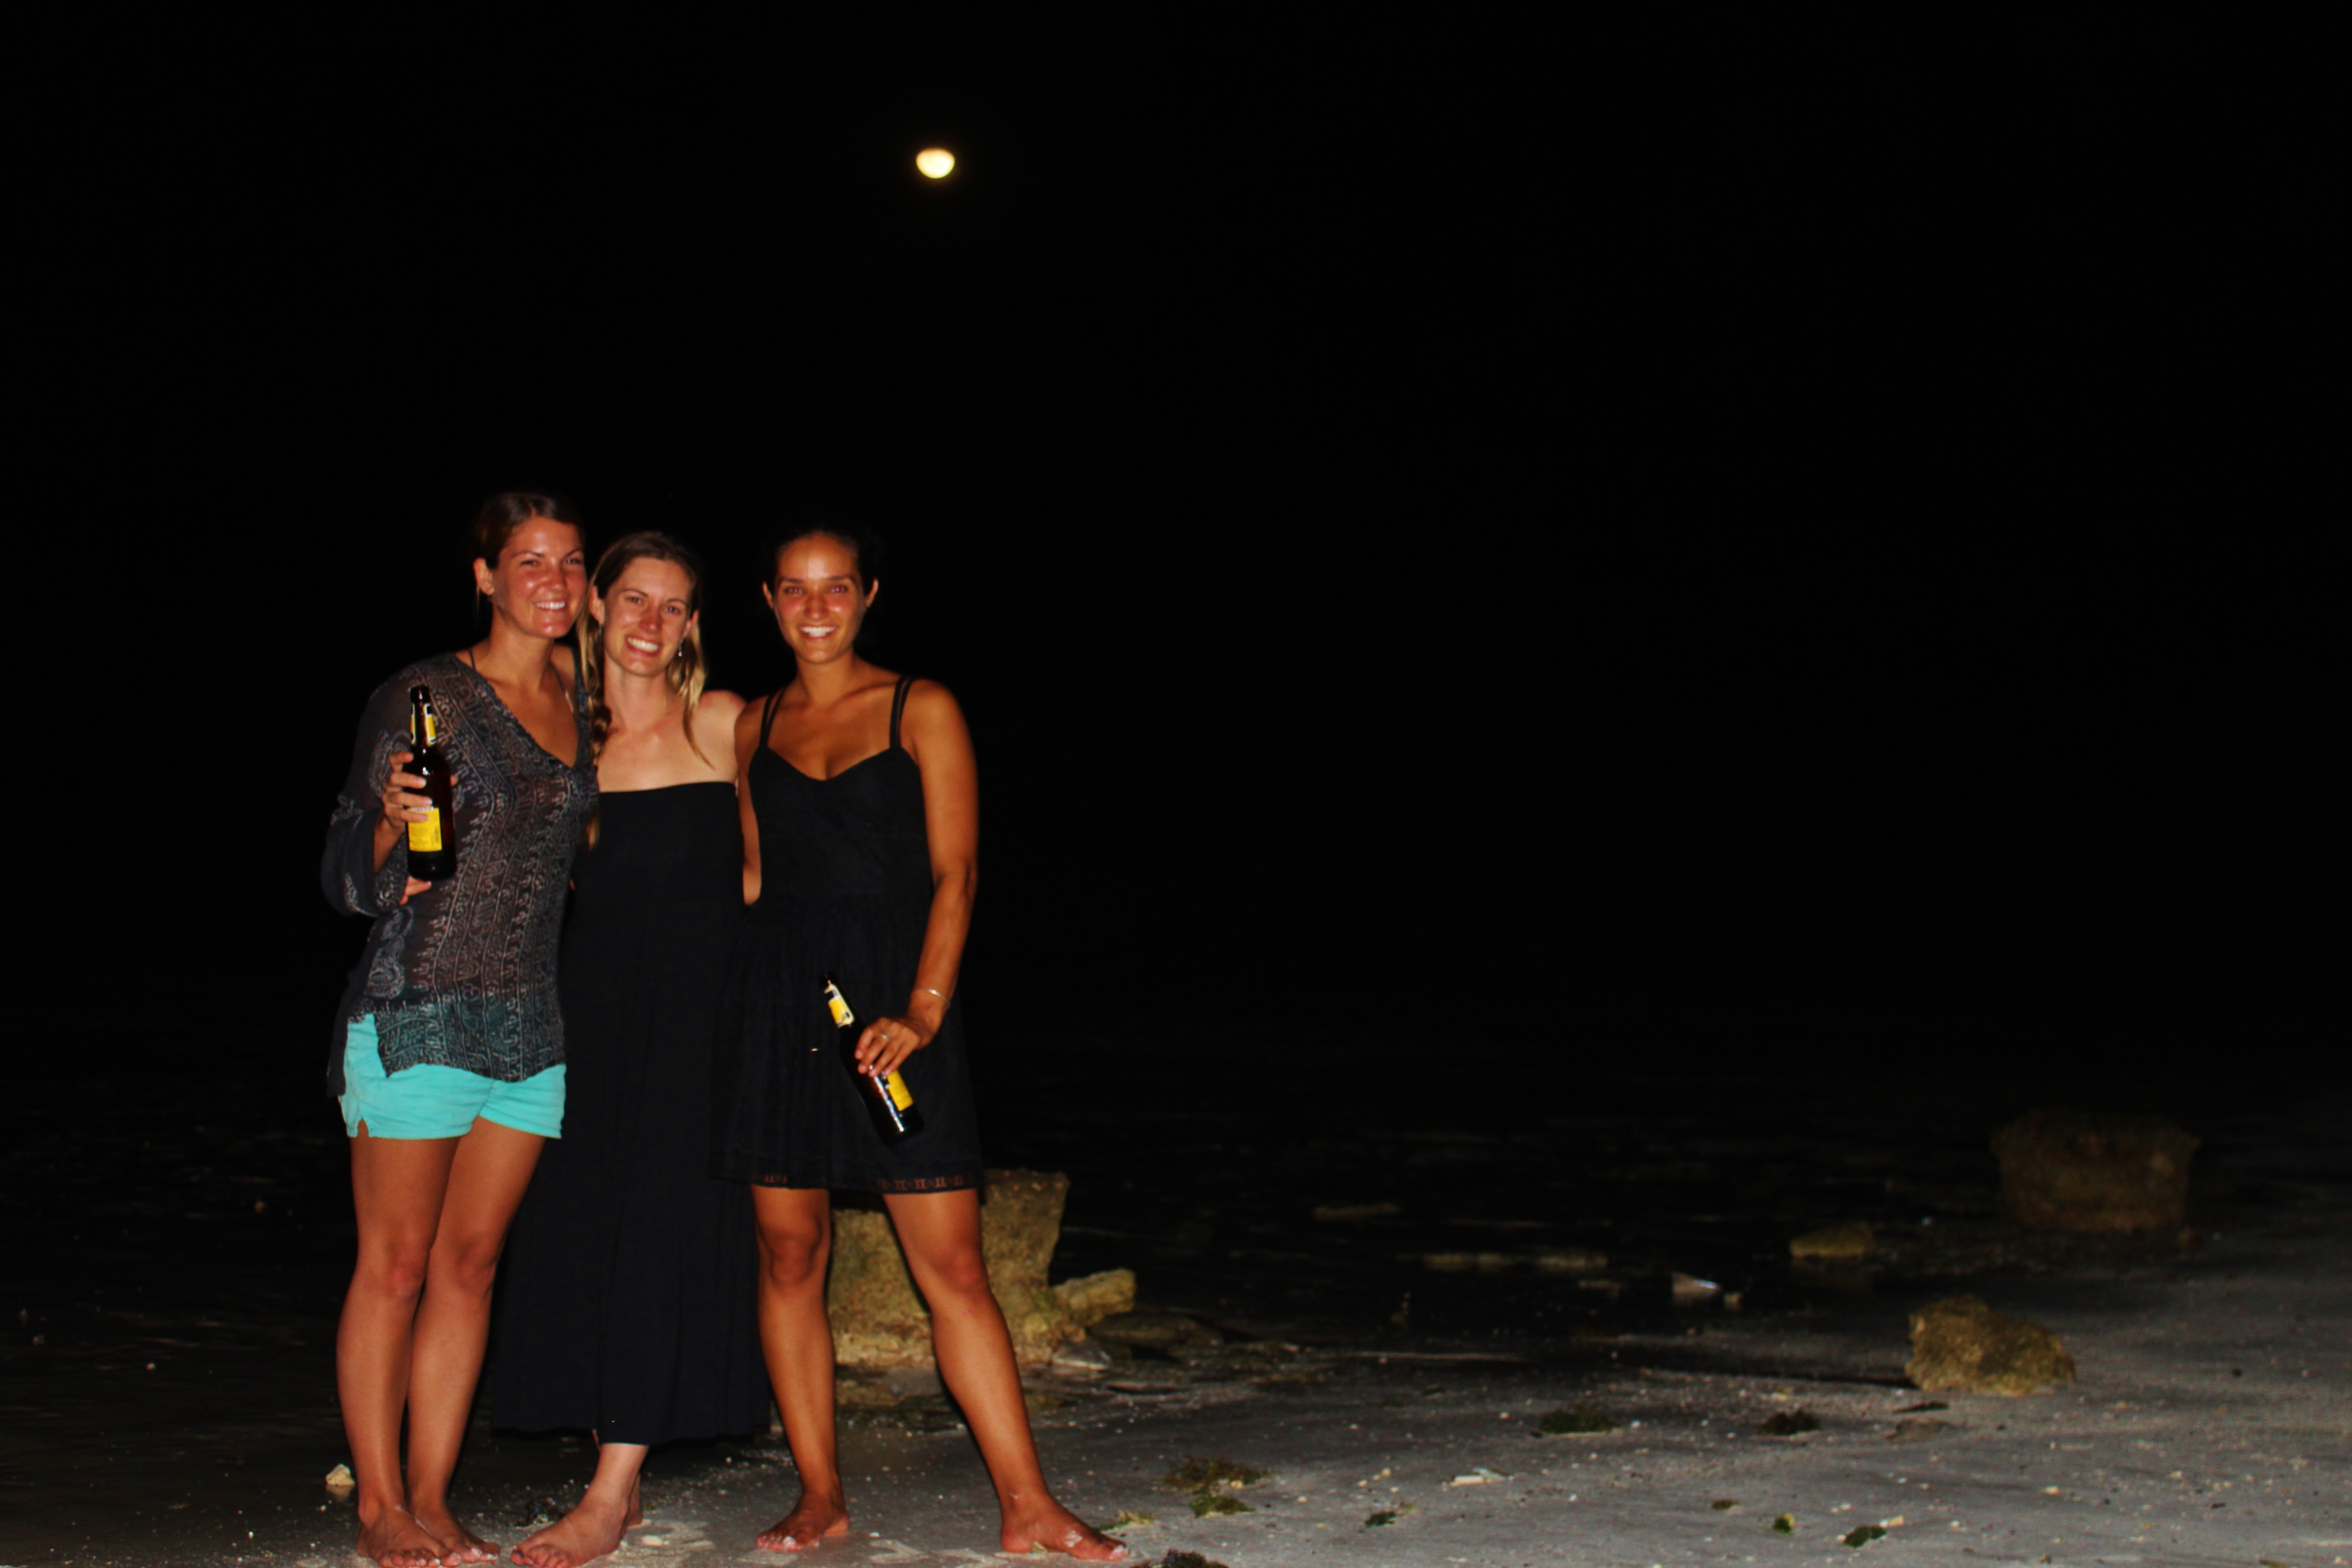 Lauren, Brie, and Kristie on the beach